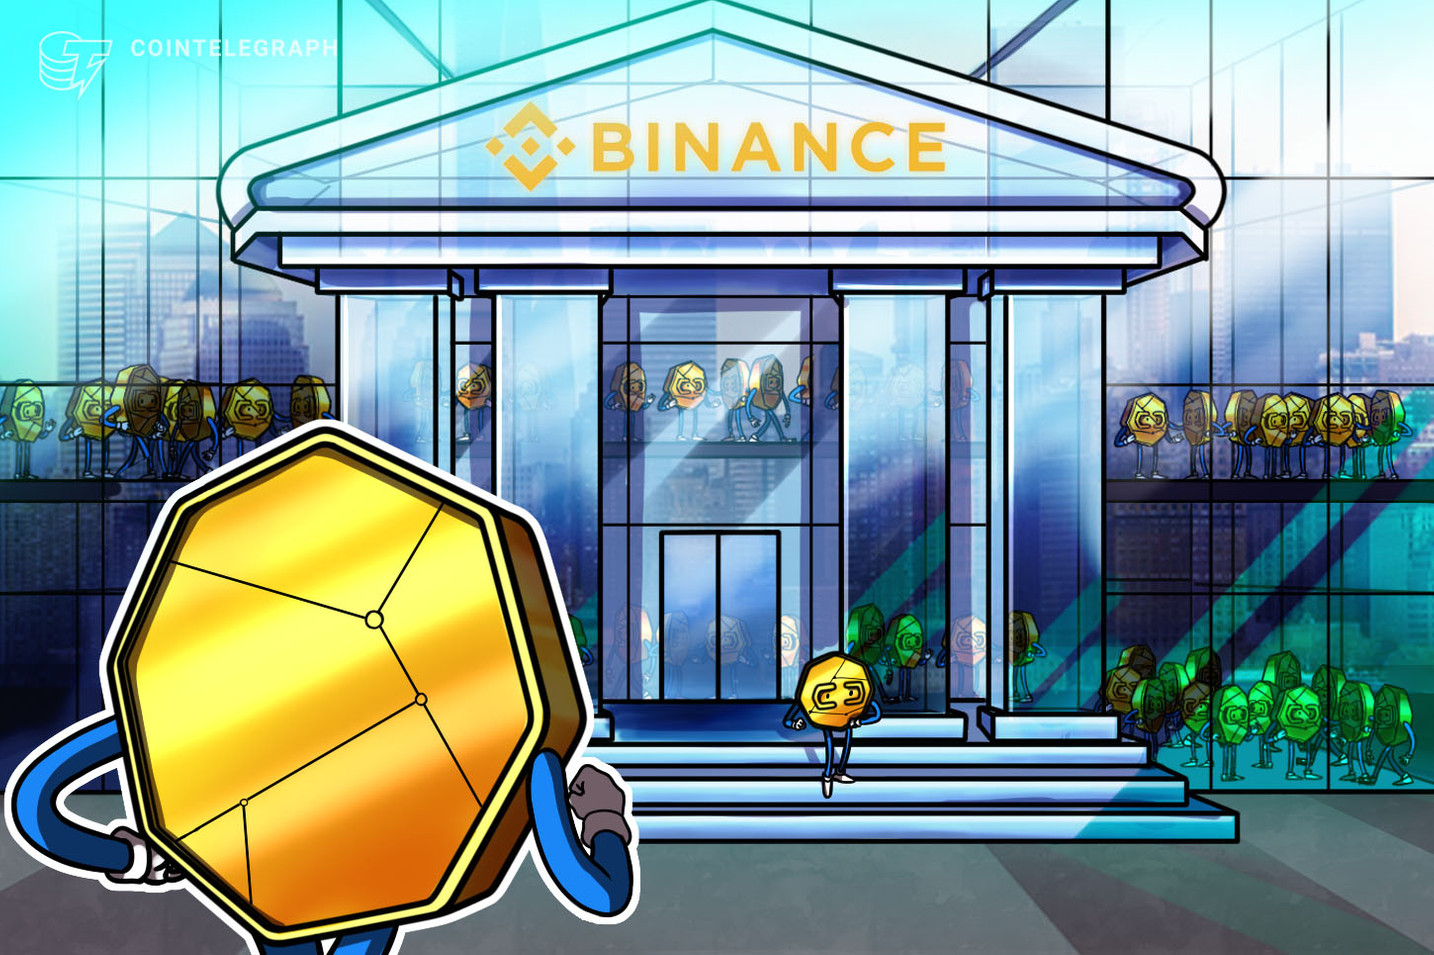 Binance trading volume tops all-time high with $37B in a day